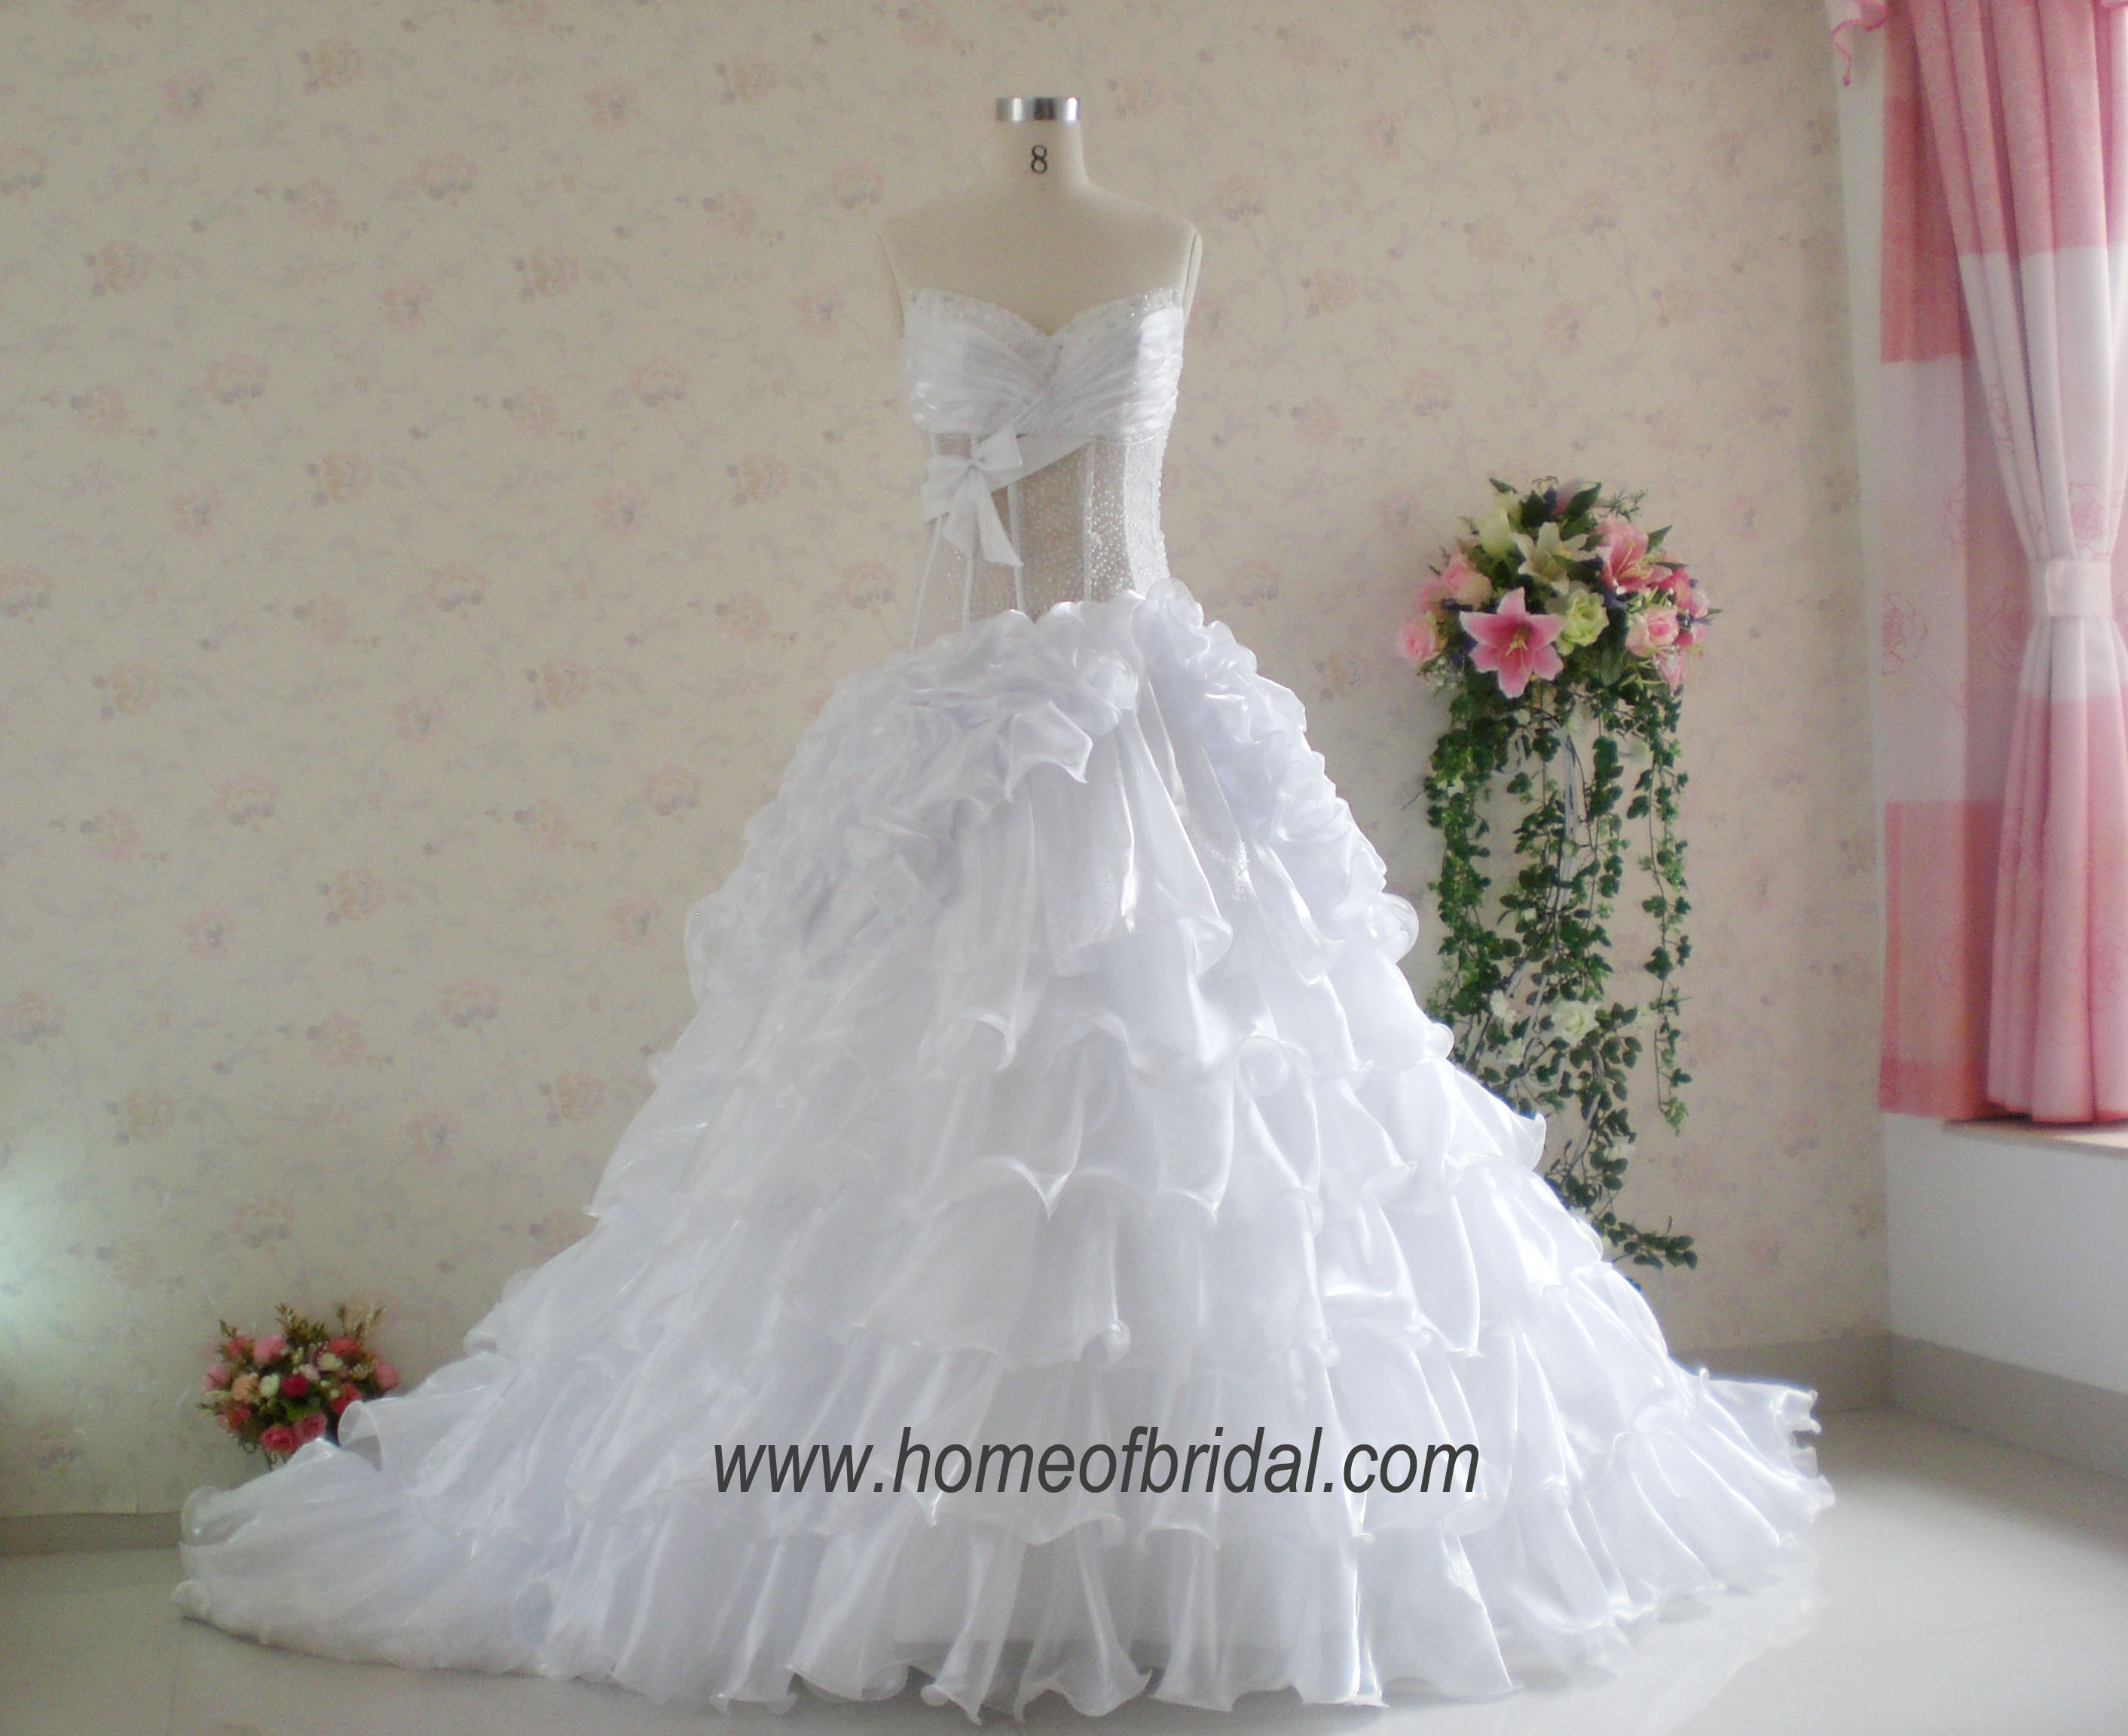 Home Of Bridal Bridal Gowns Wedding Dresses Wholesaler And Retail